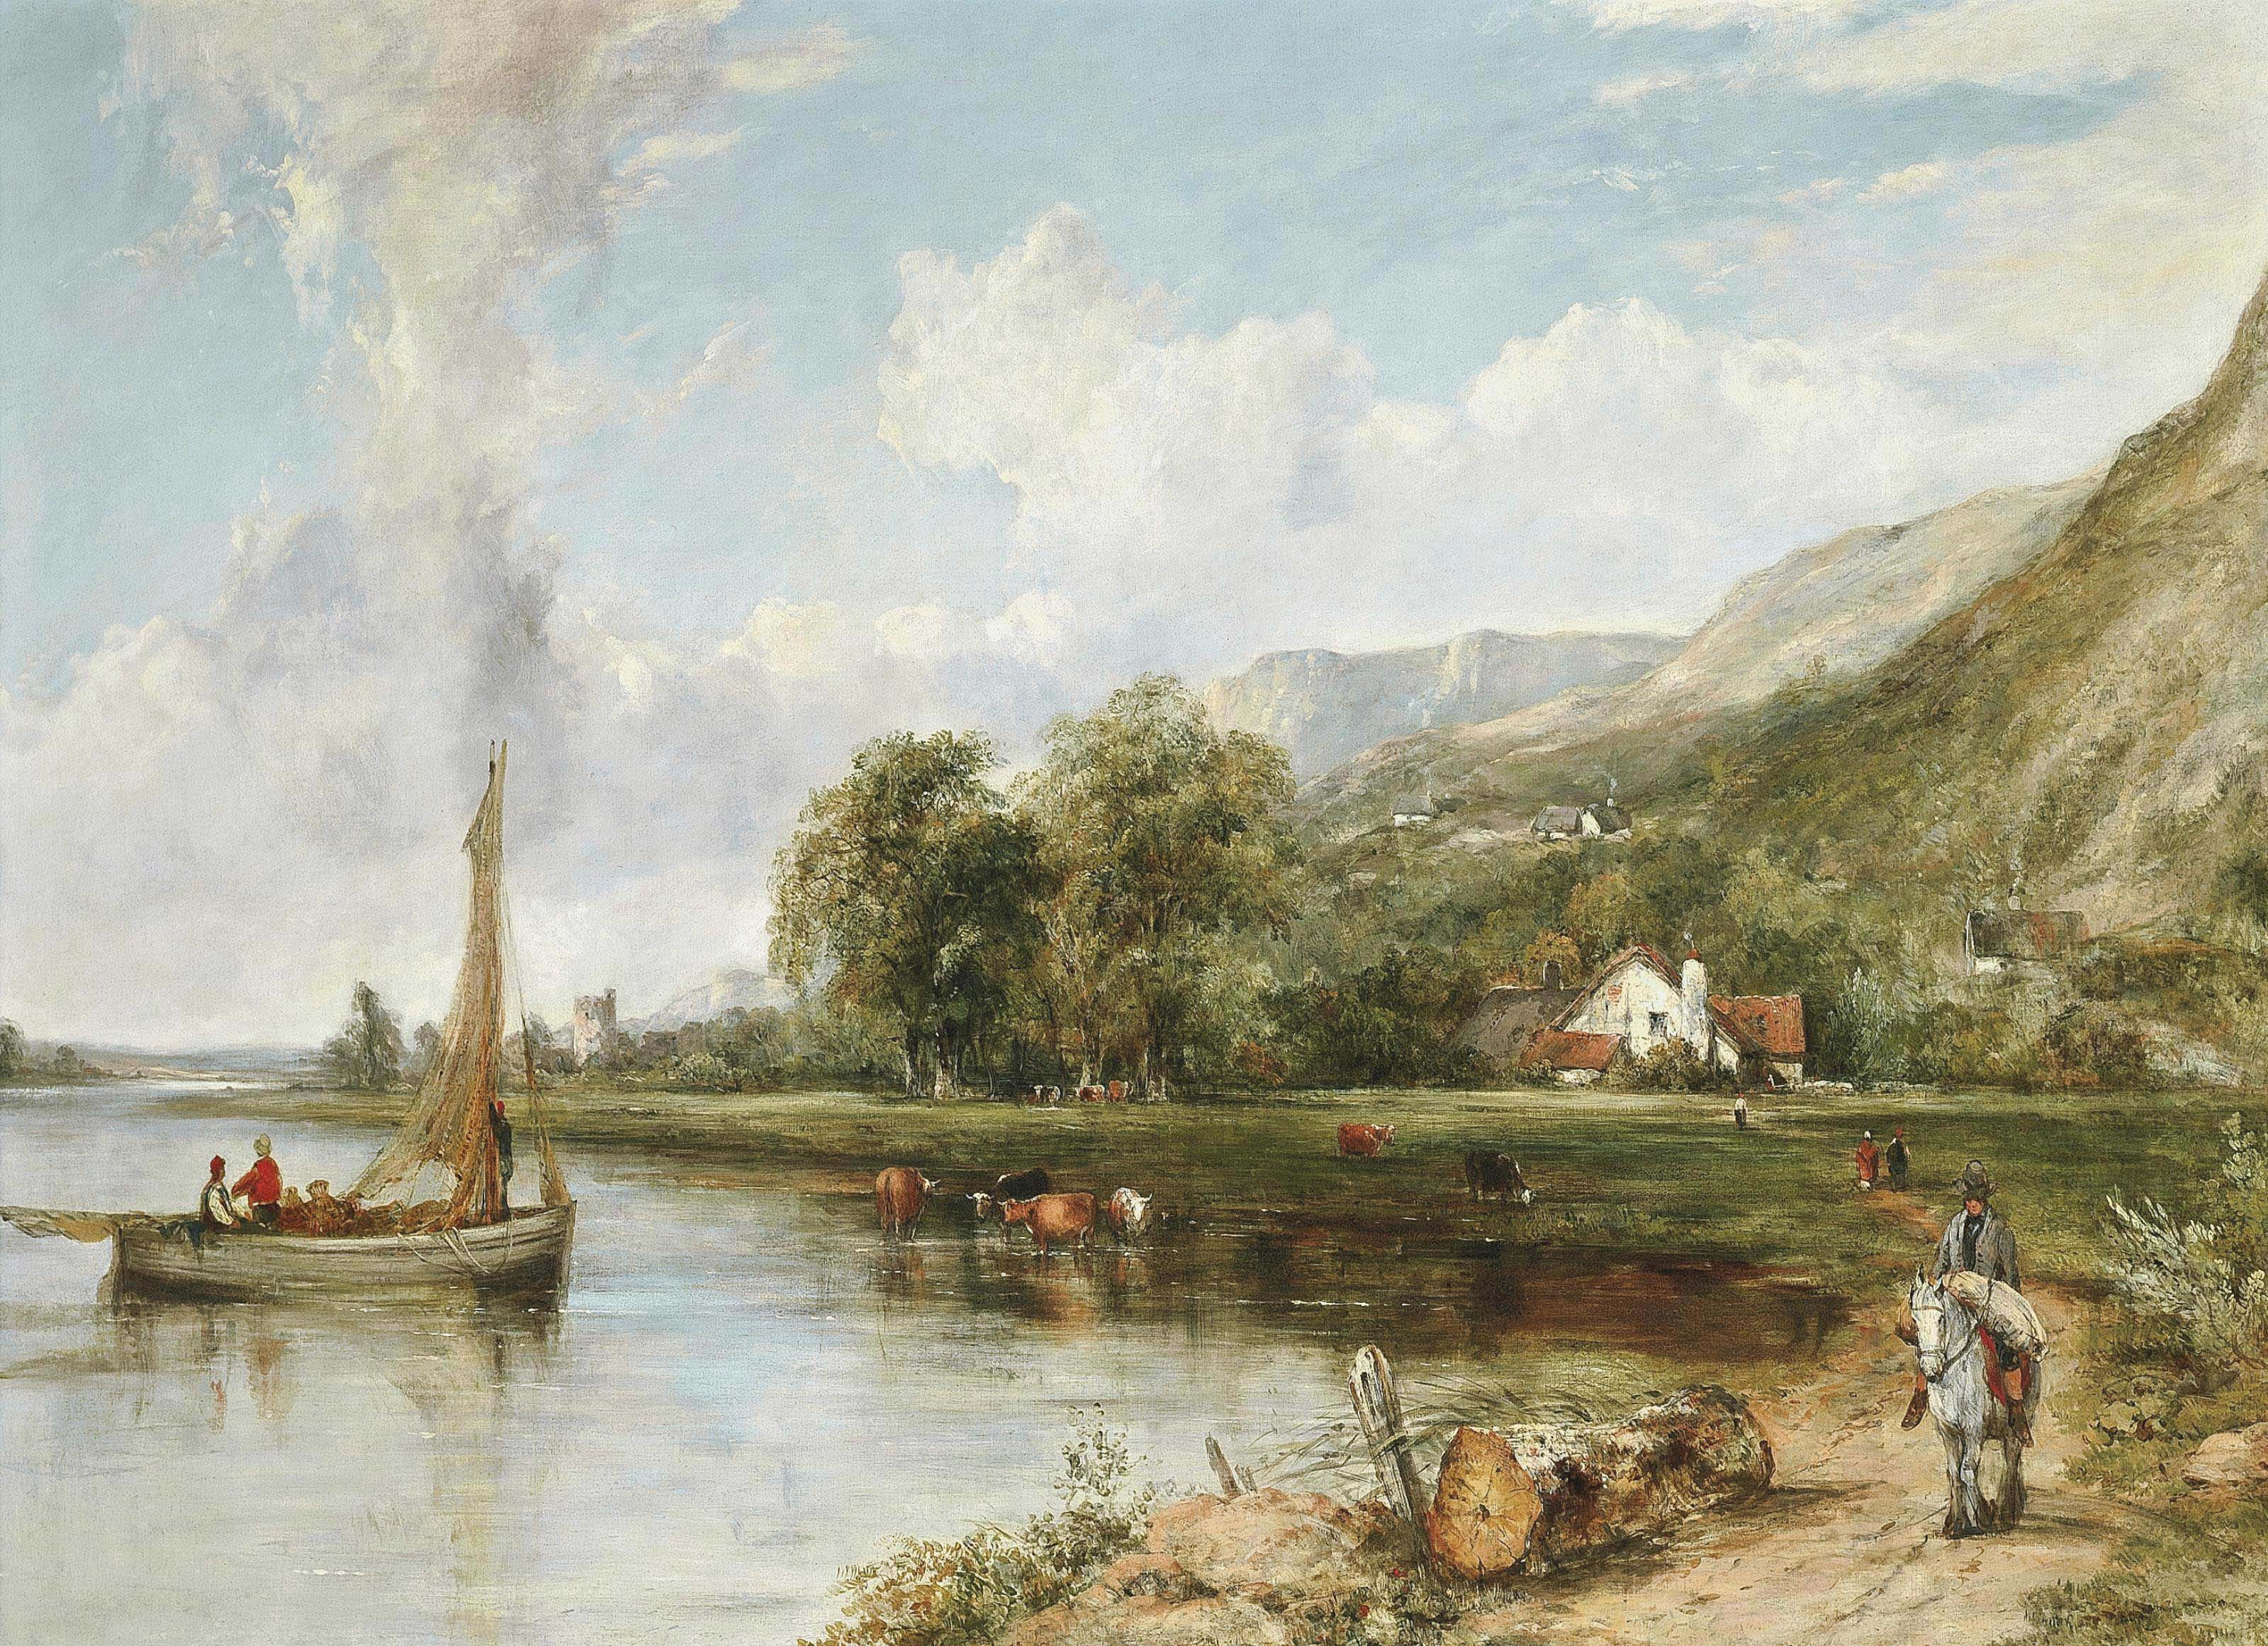 Fishing on the estuary, with cattle watering nearby